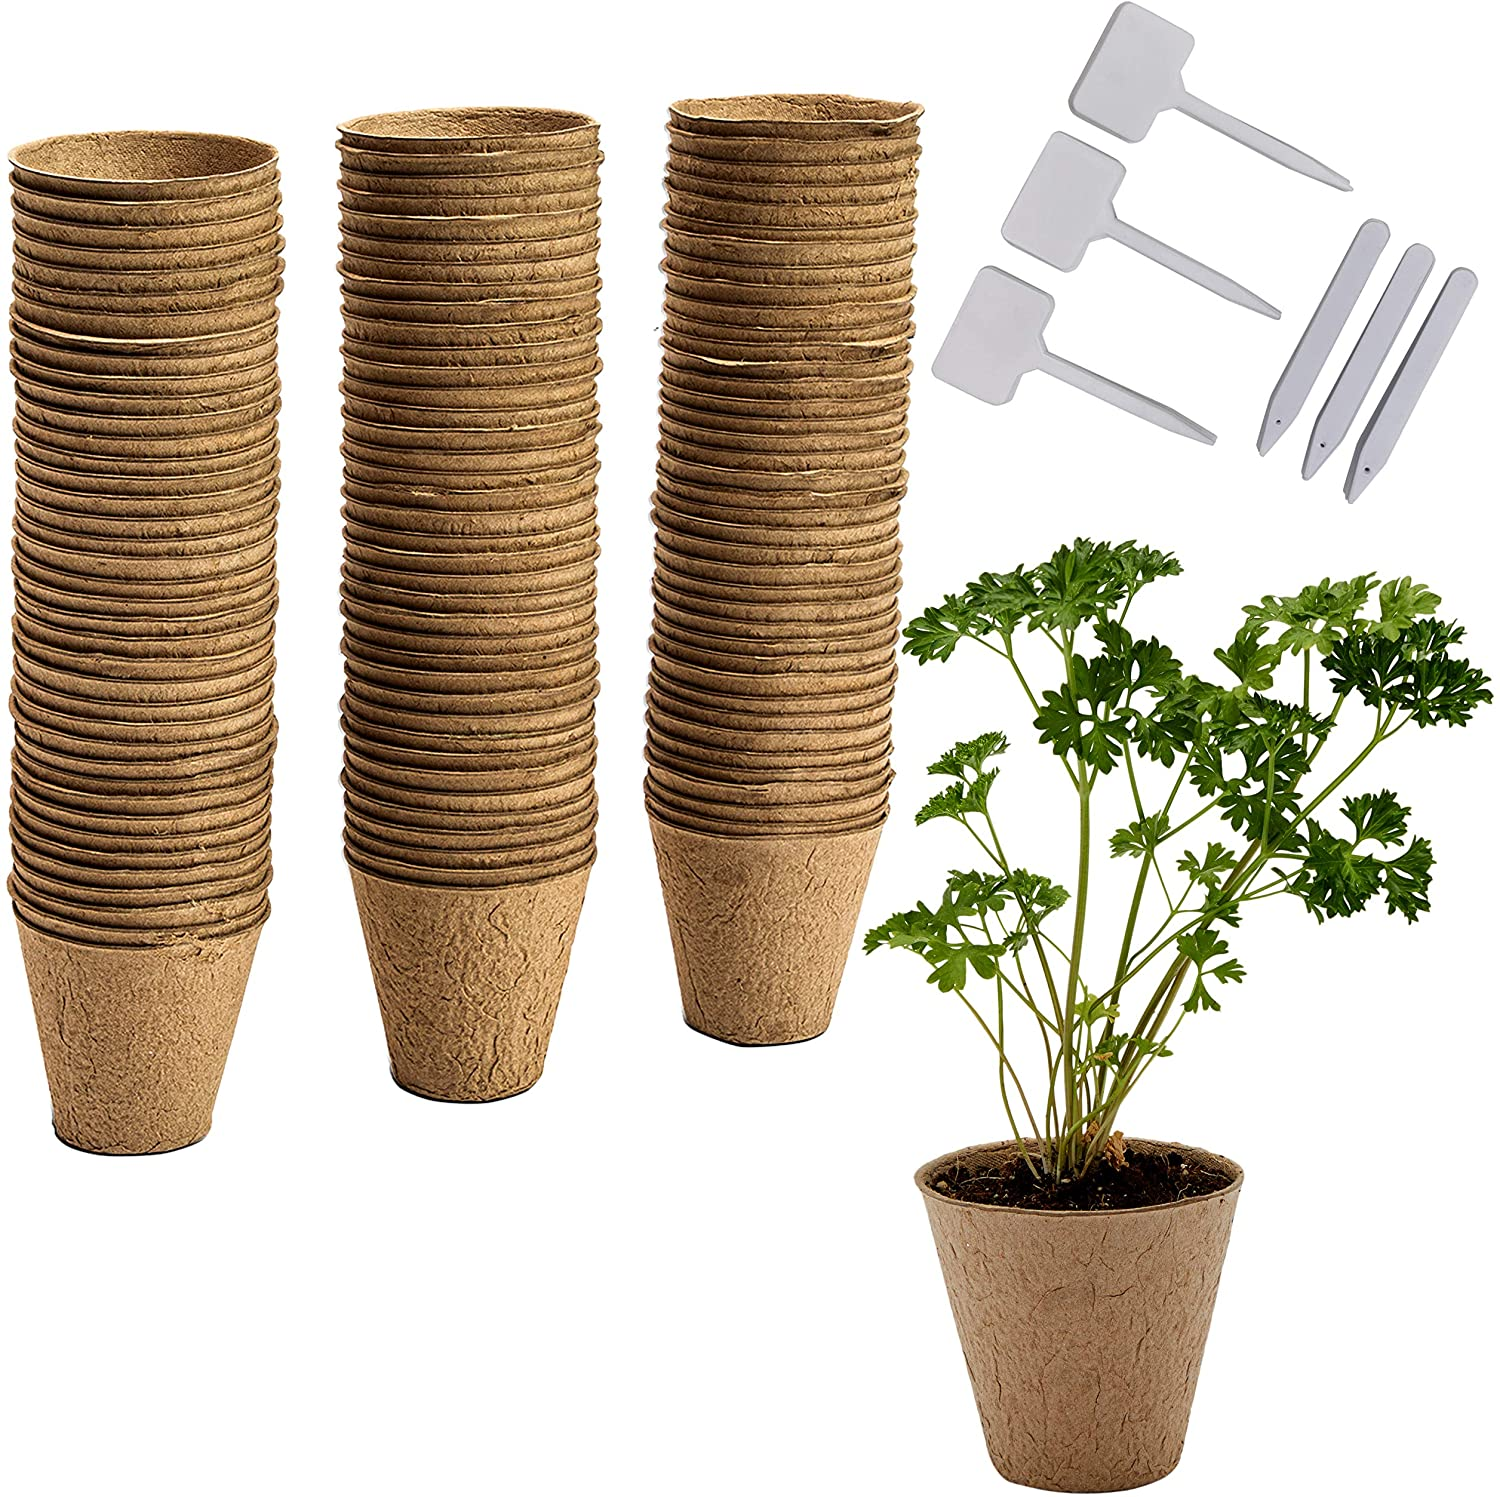 Round Peat Starter Pots with Plastic Plant Labels (3.15 x 3 in, 120 Pack)